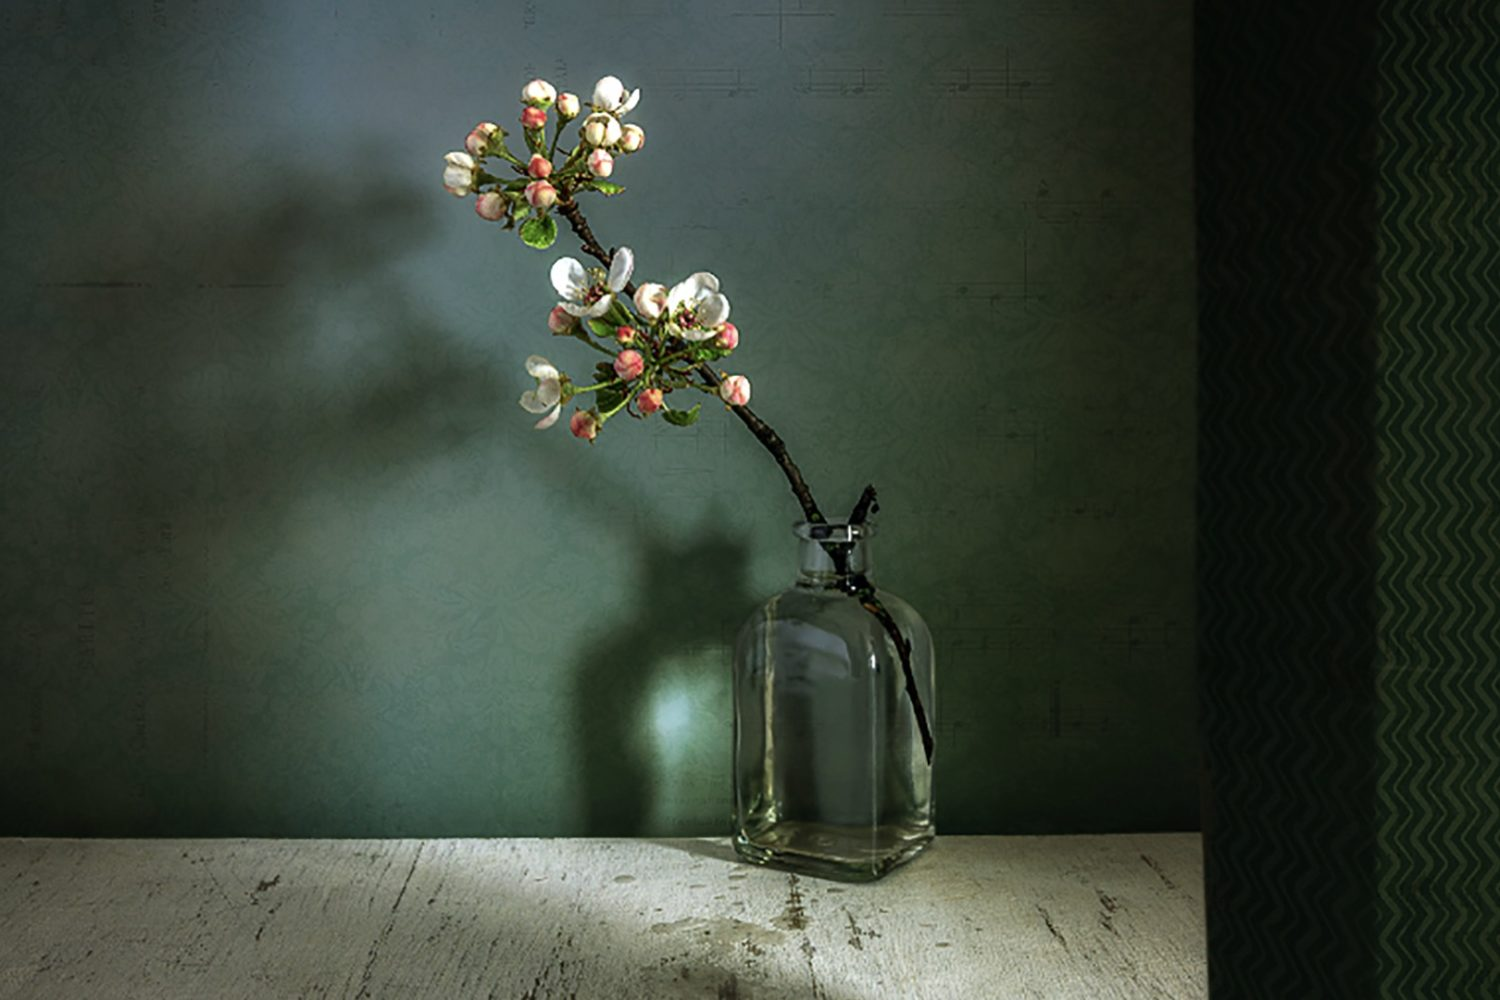 Still life photography: The essential guide for photographers